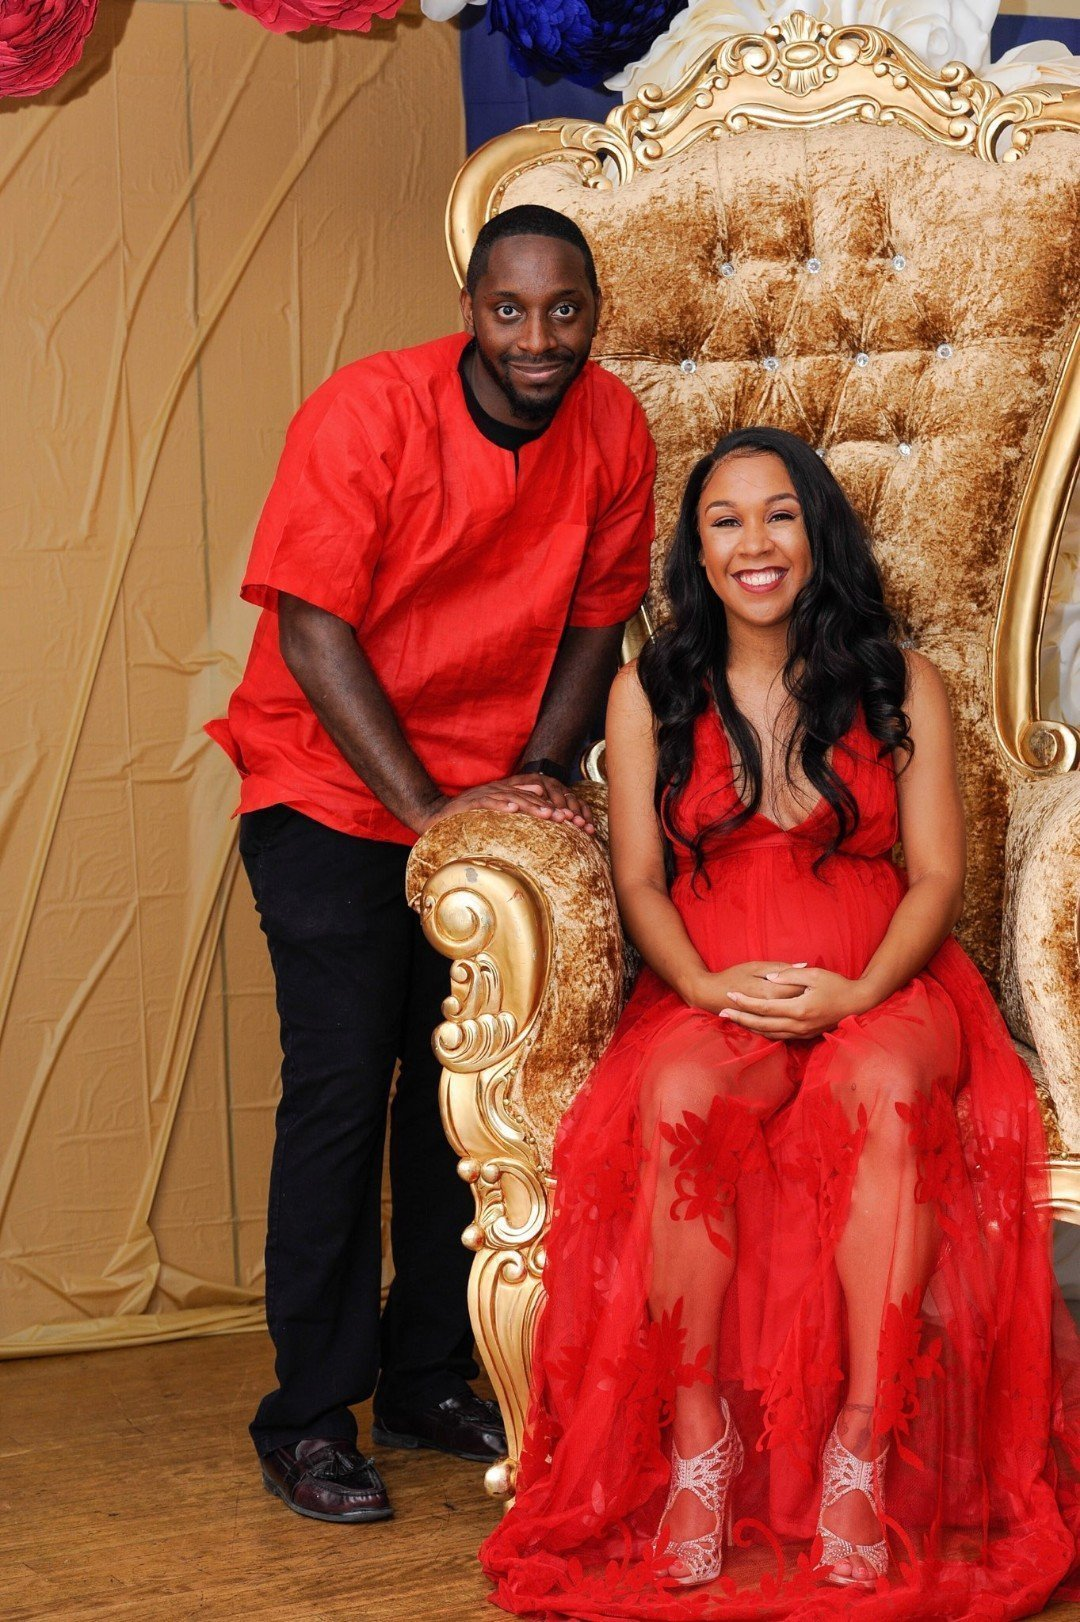 Iesha of LivingLesh and her husband in her baby shower throne chair